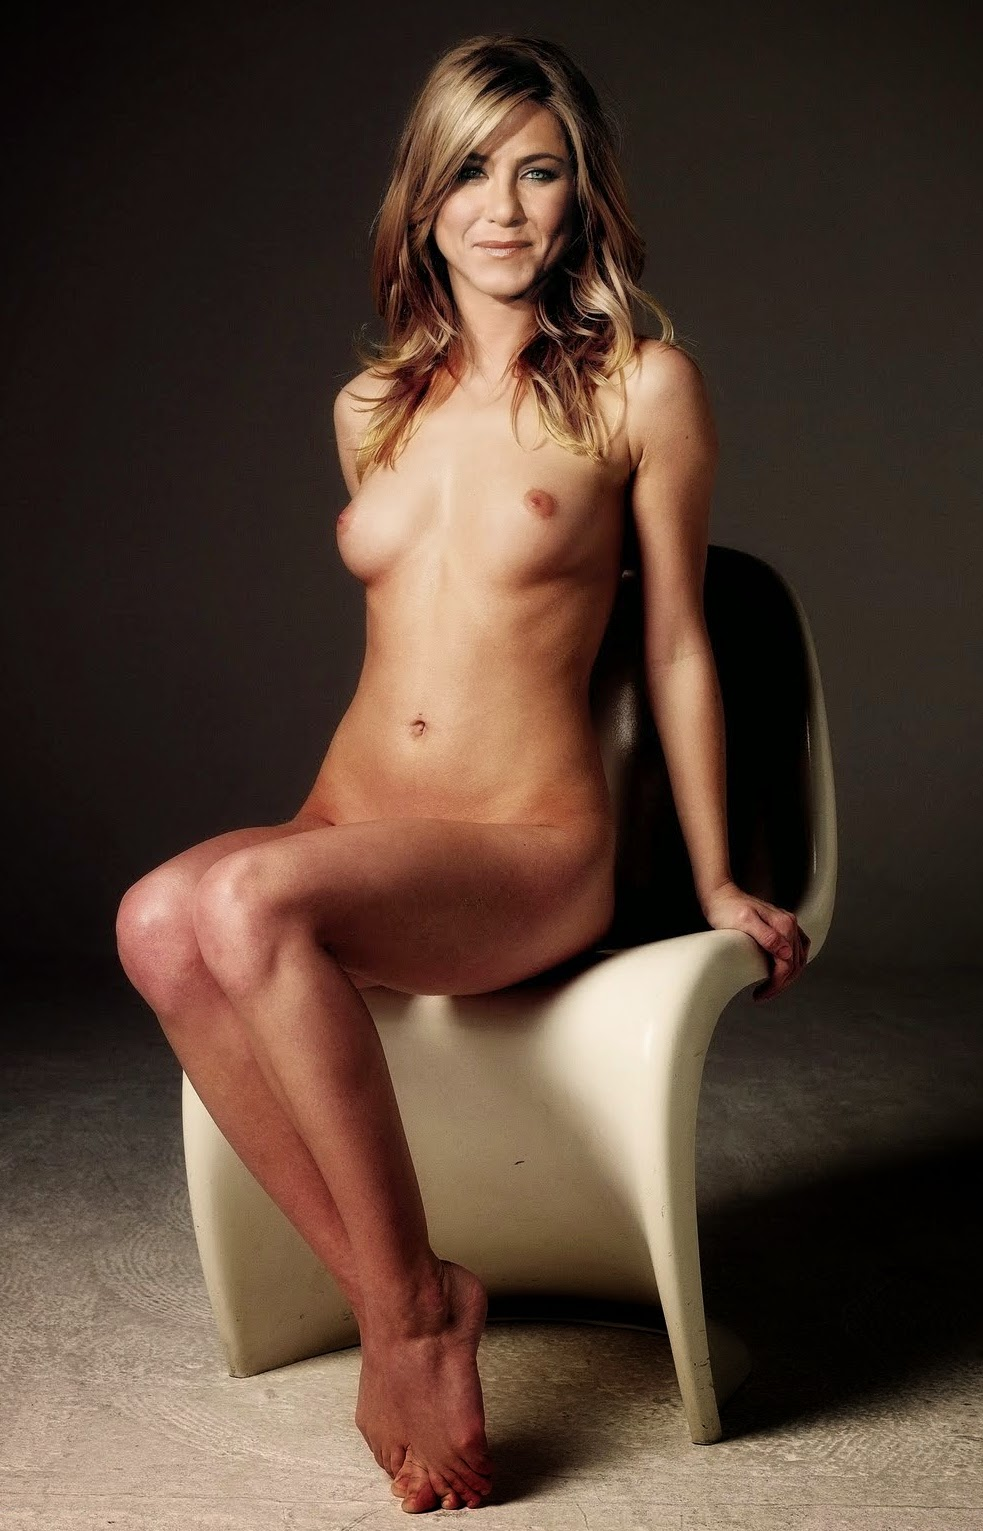 Aniston jennifer nude pic